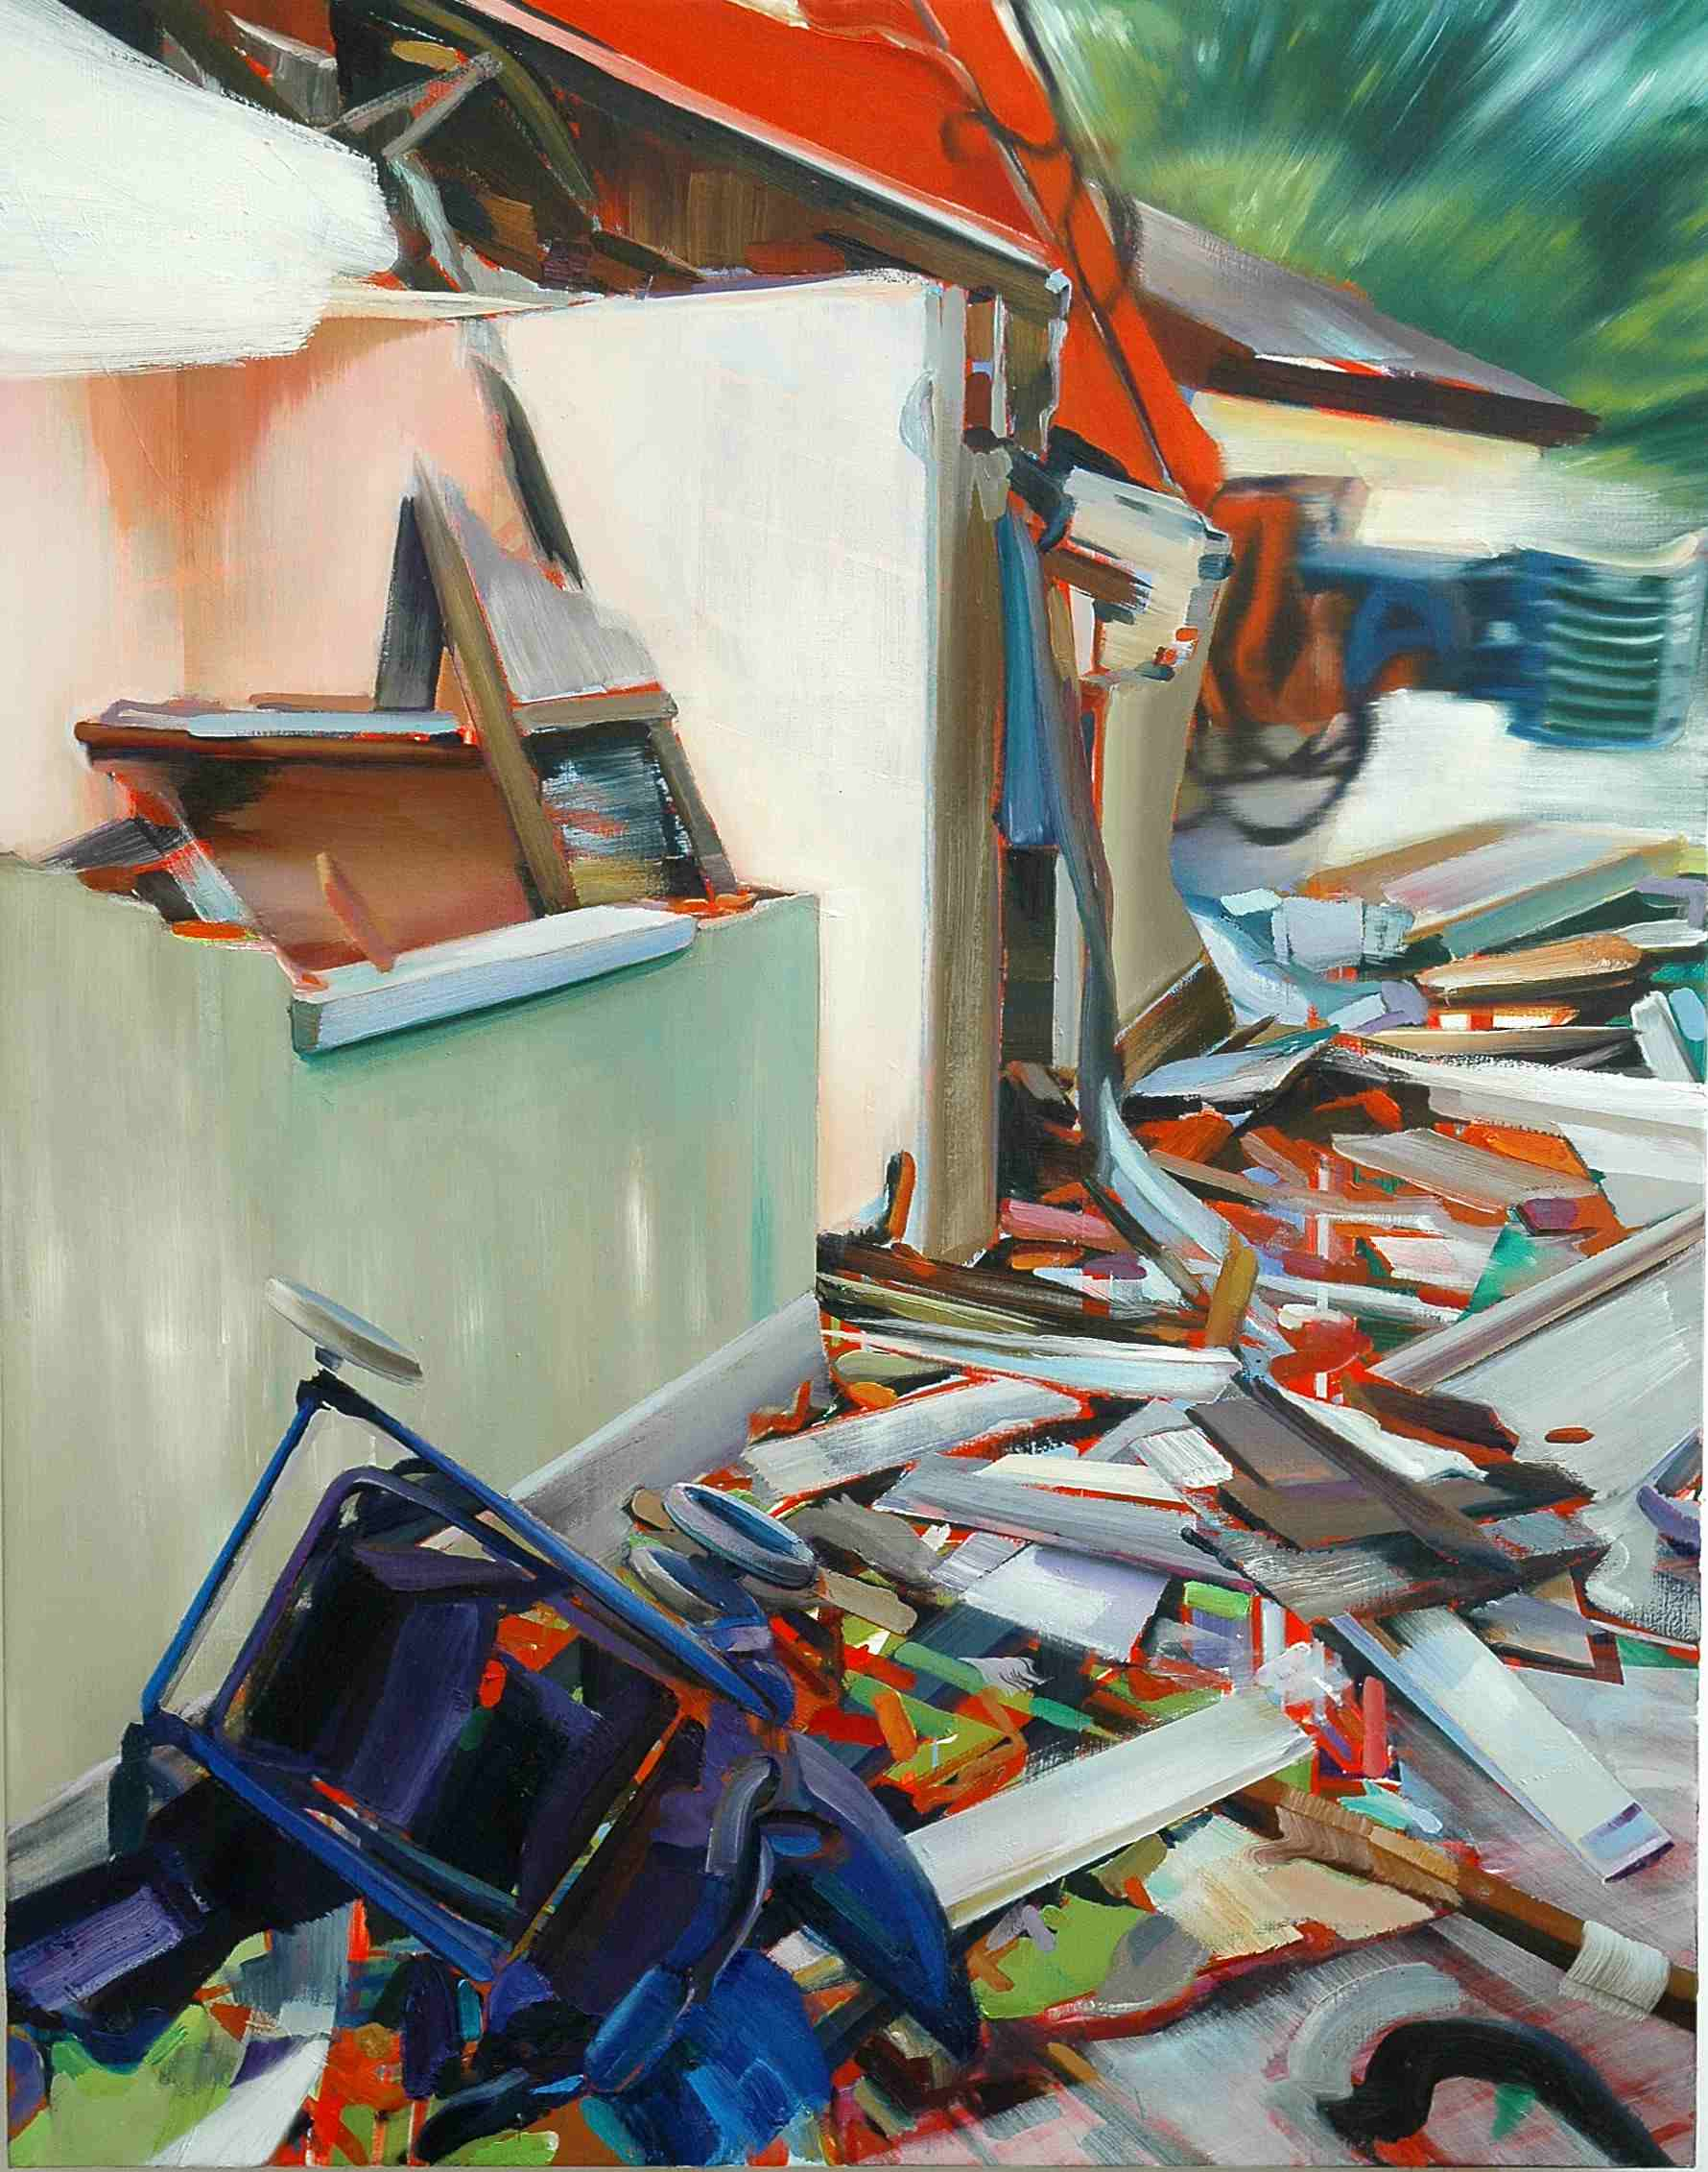 House Mix 1 , 2007, oil on canvas, 145 x 114cm. Salomon Foundation collection, France